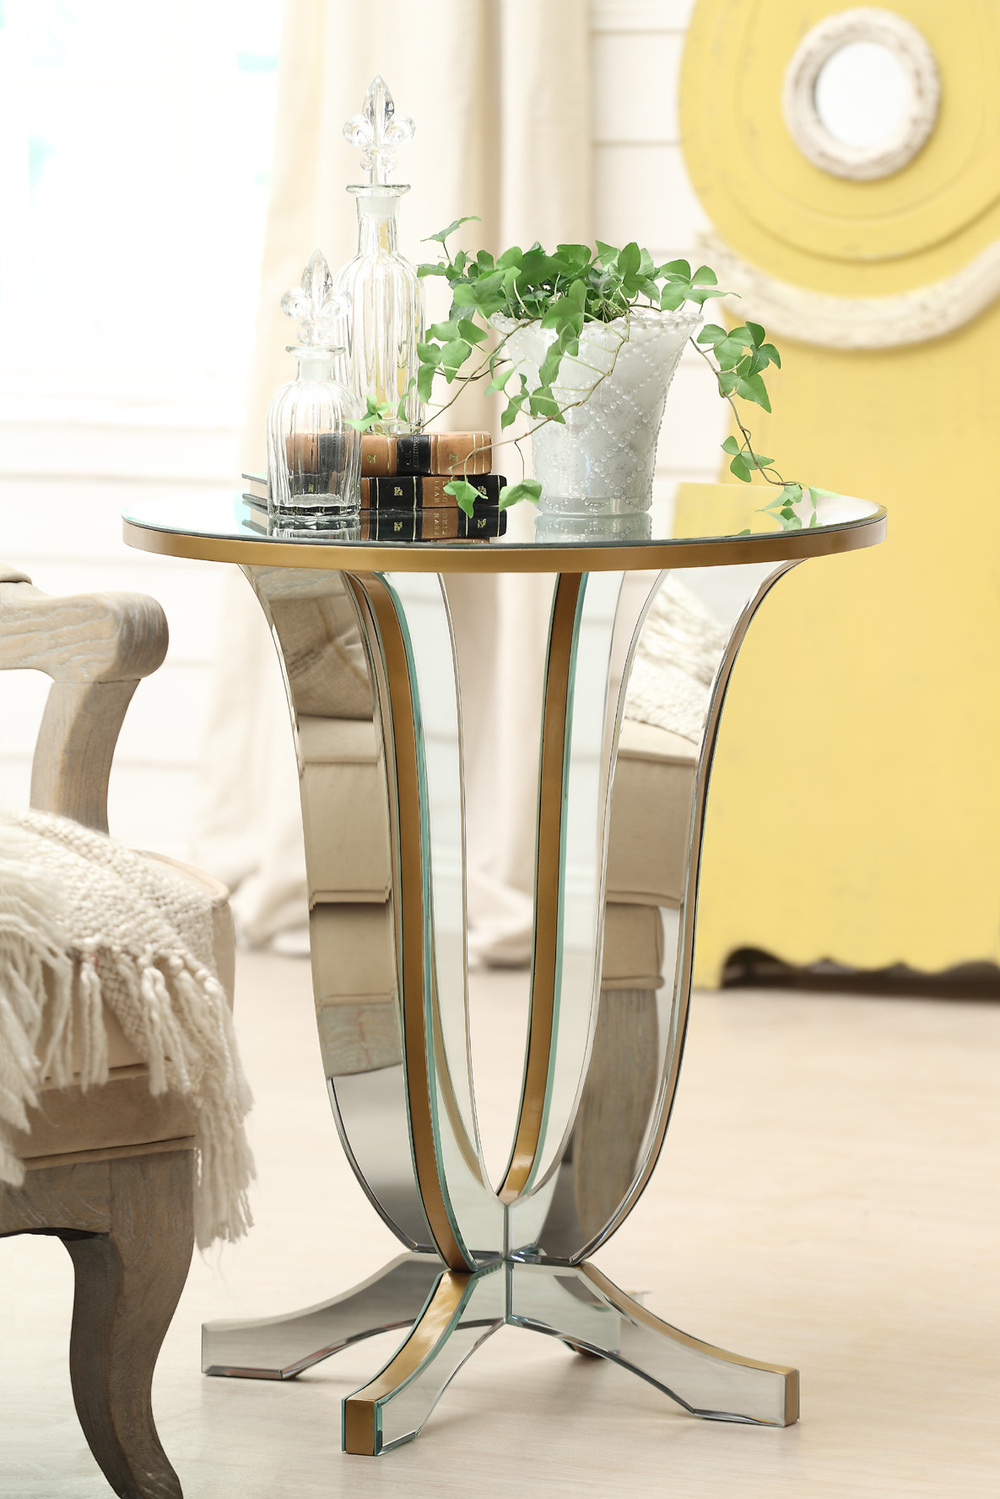 the latest glass end table for living room amazing side oak inspirational attractive mirrored furniture round subtract and curve leg ikea coffee target small half circle accent